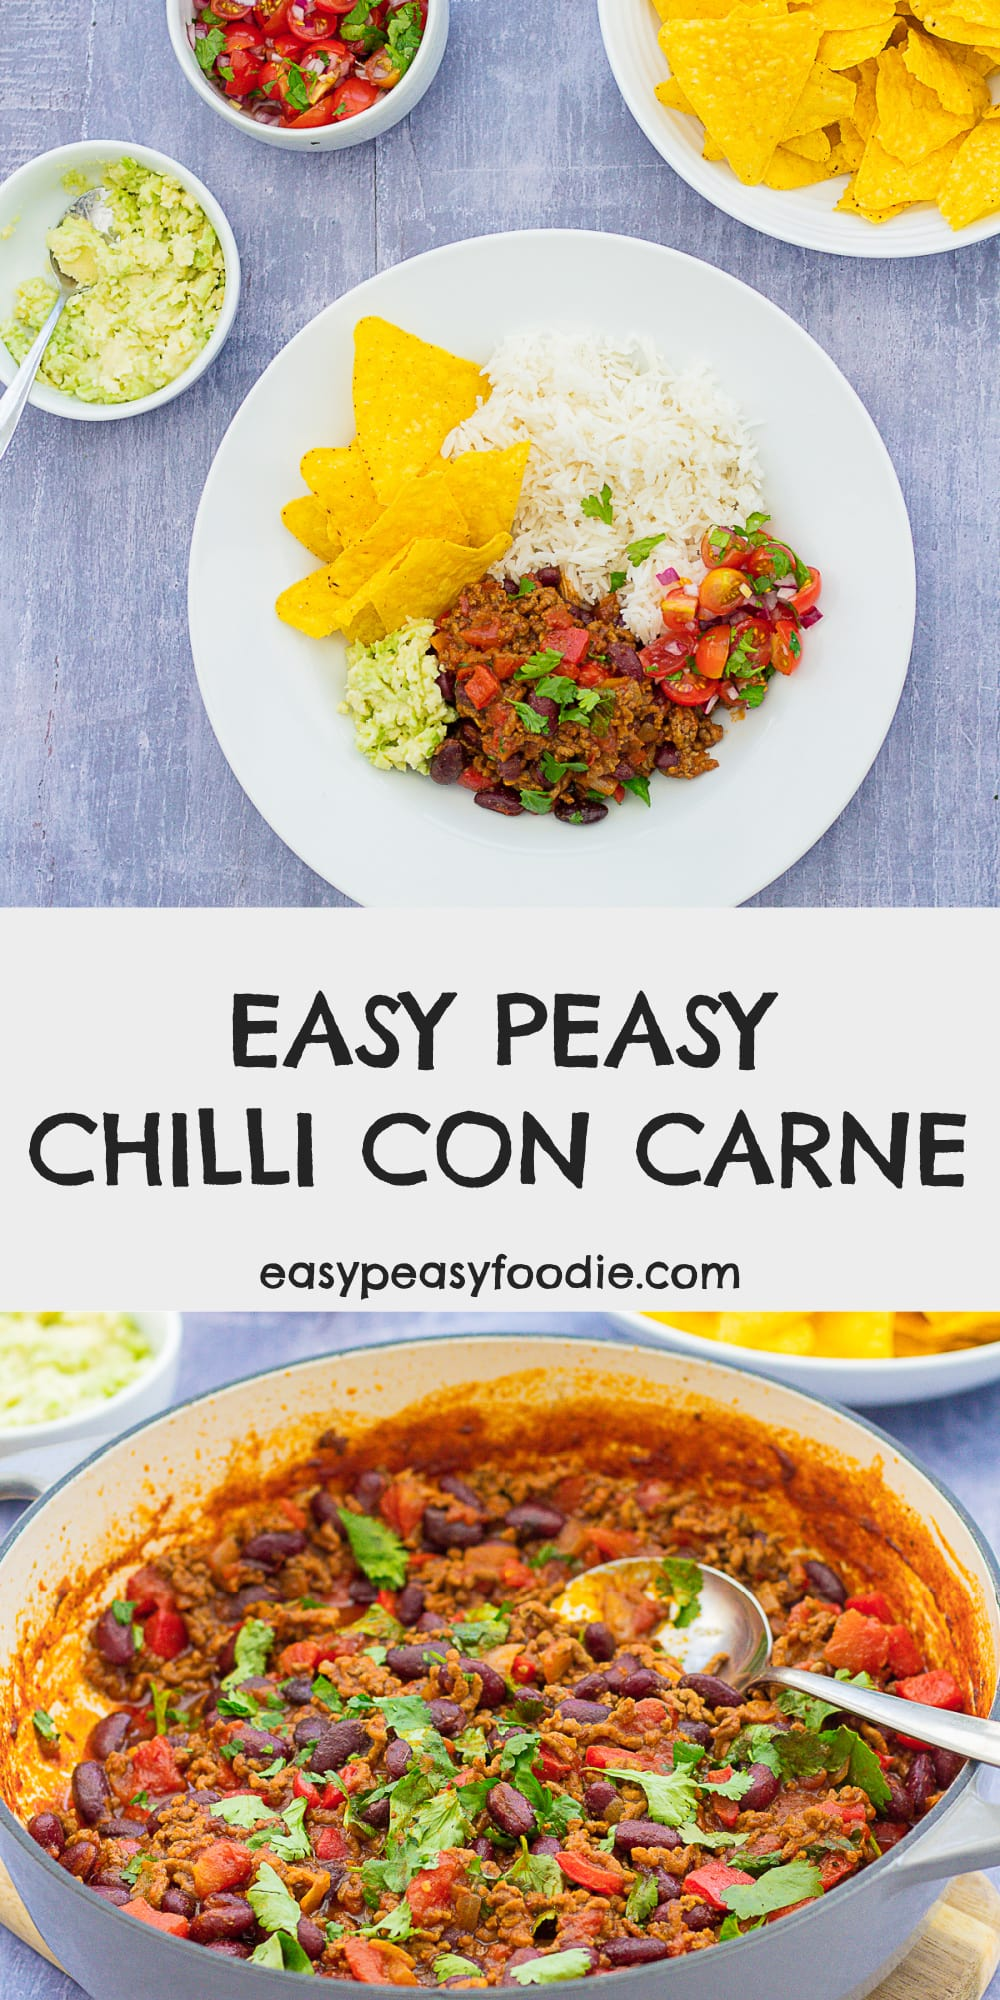 Easy Peasy Chilli Con Carne - pinnable image for Pinterest